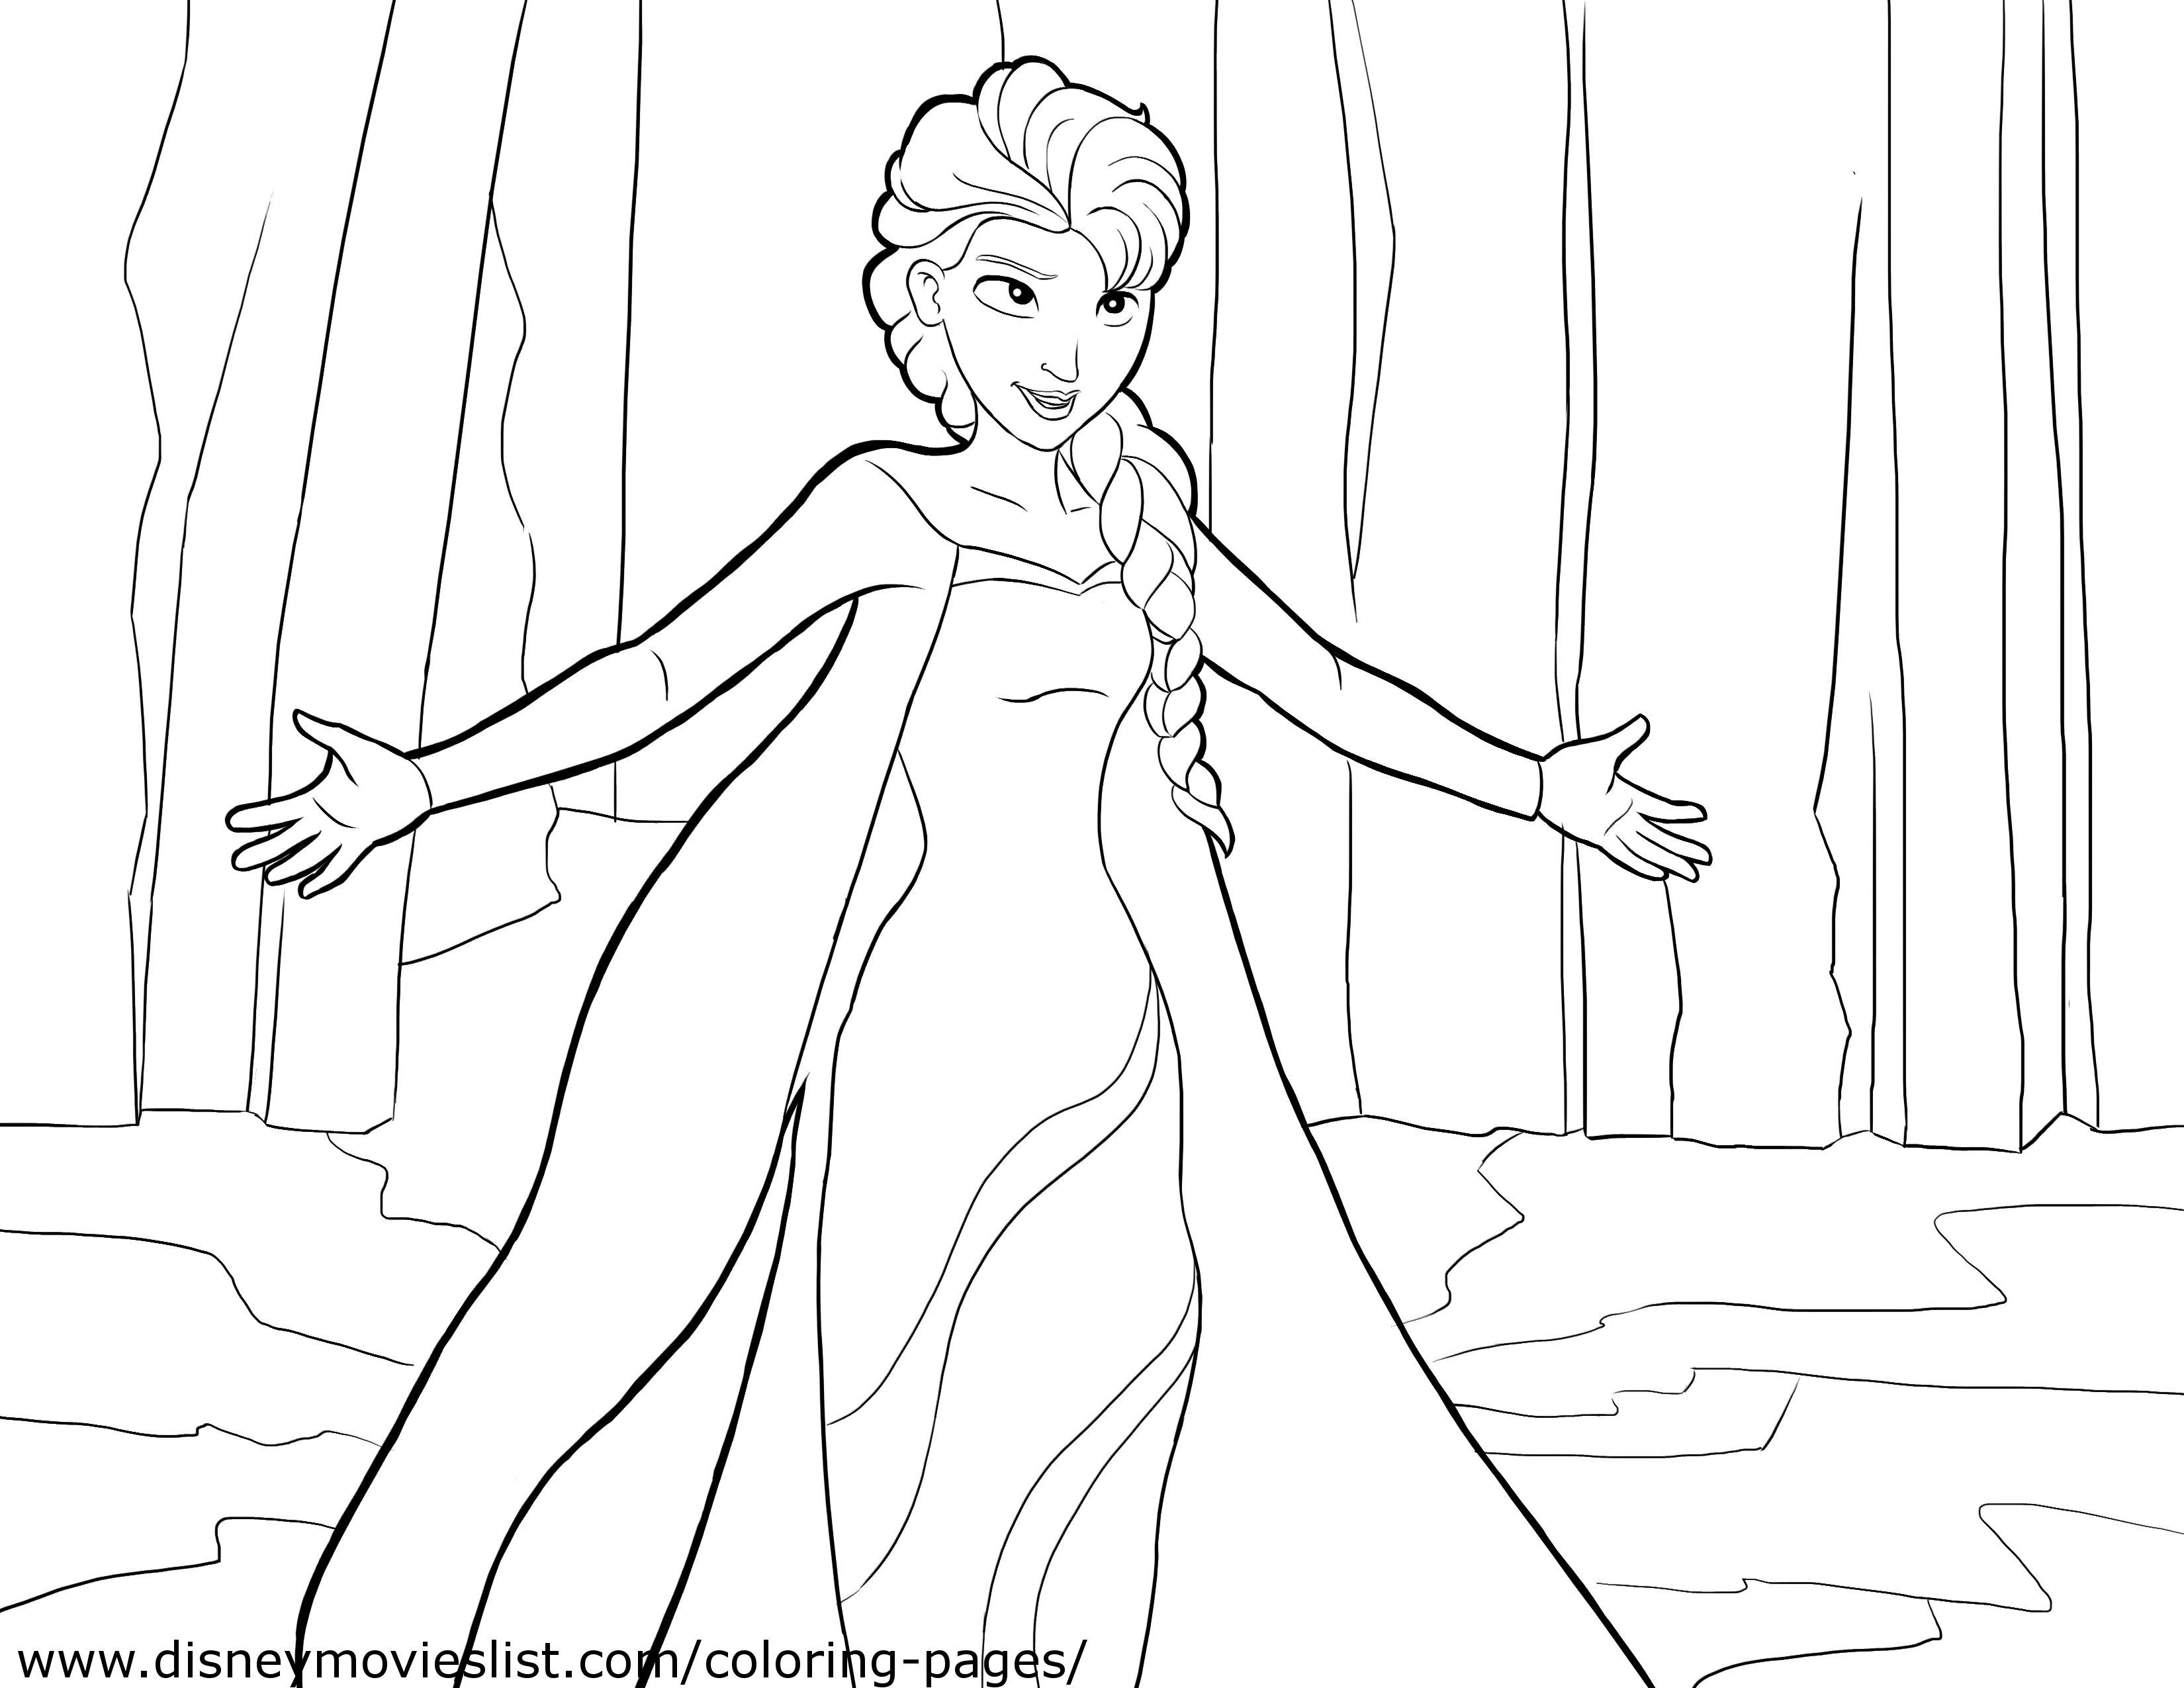 Disney Frozen Coloring Pages Elsa Coloring Pages Frozen